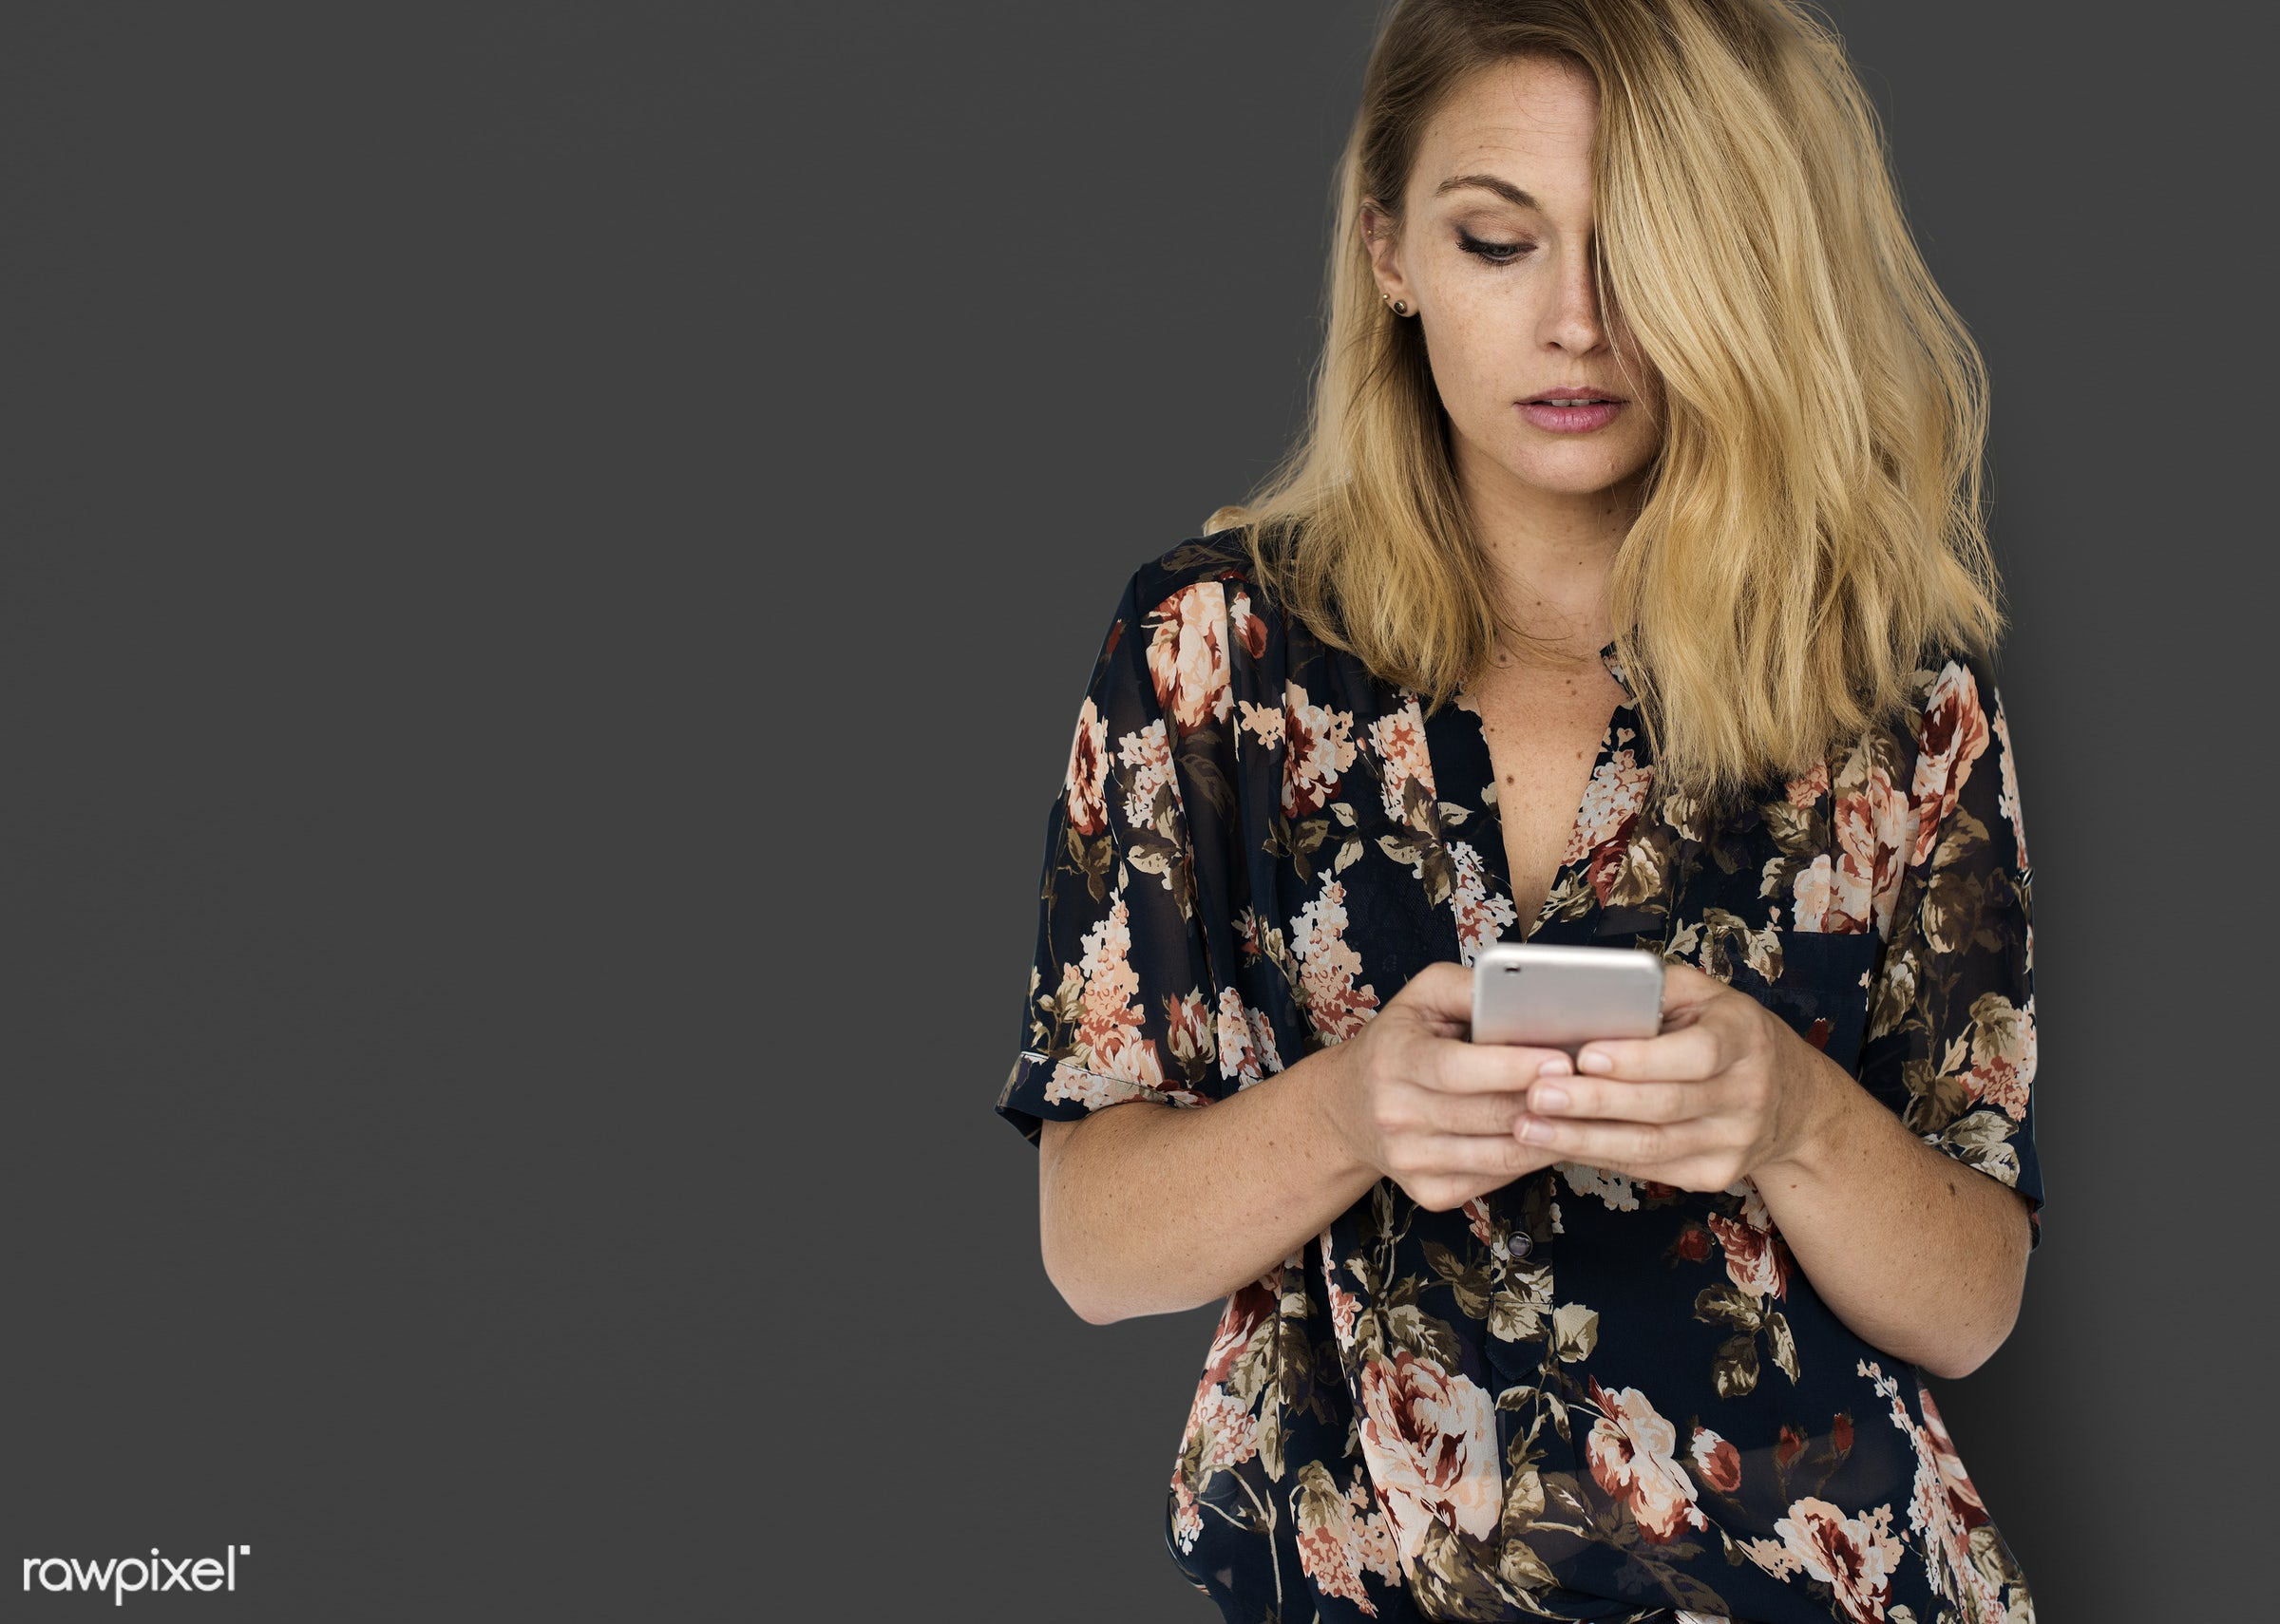 mobile phone, background, beauty, browsing, brunette, casual, charming, chatting, communication, connection, emotion,...